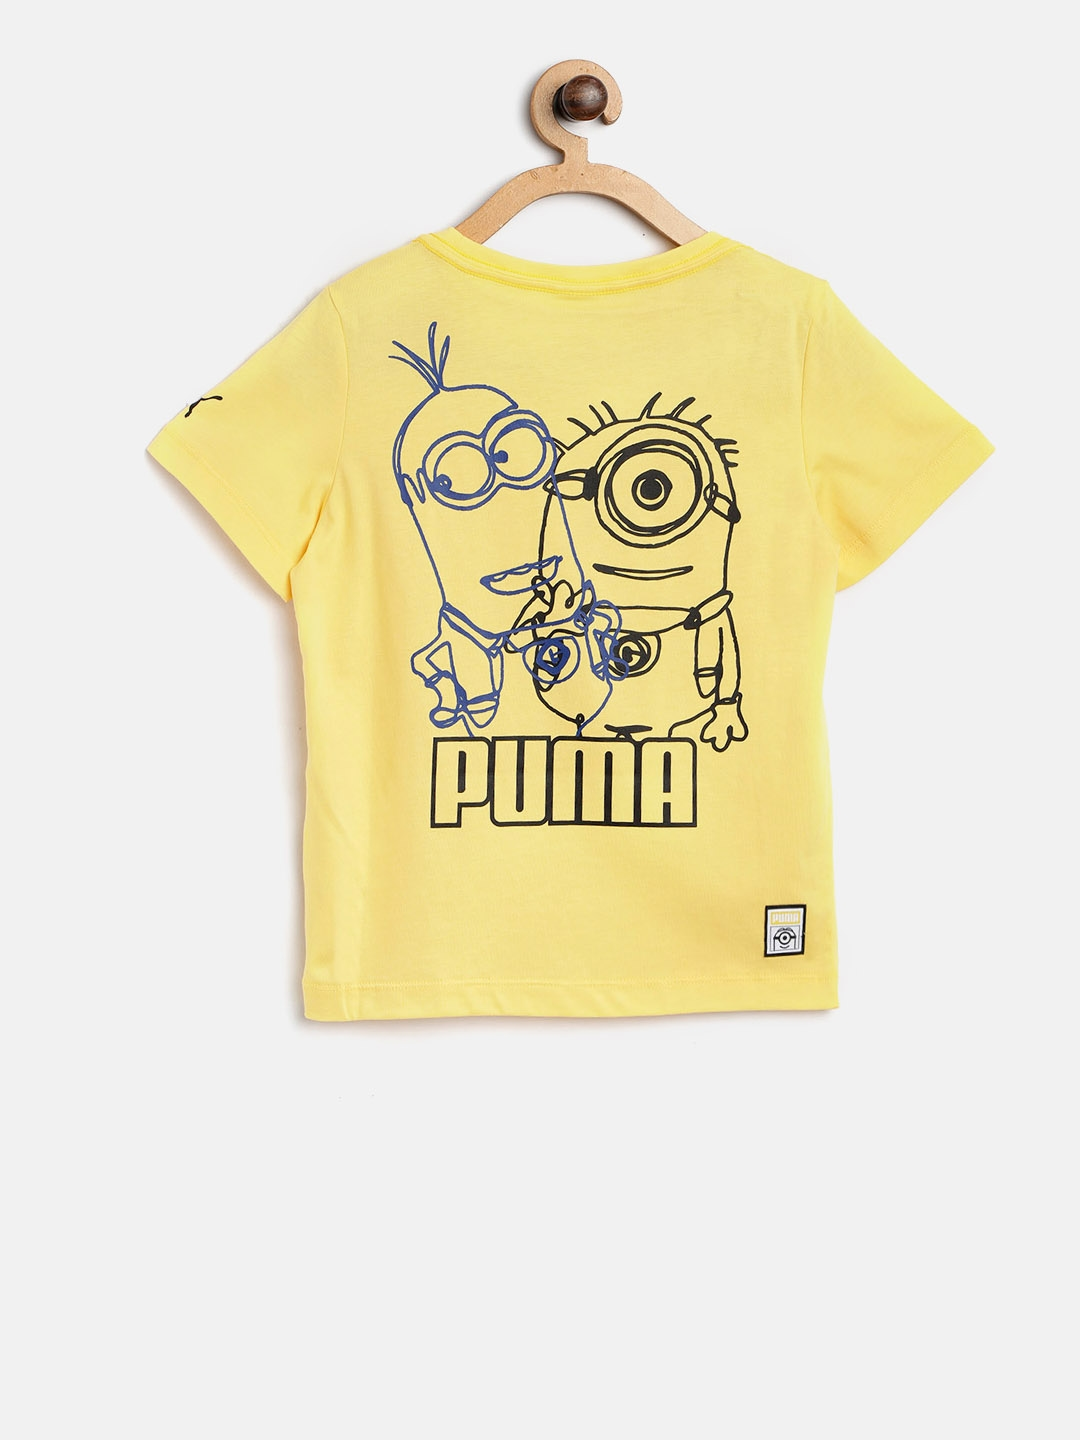 e73423f3 Buy Puma Boys Yellow Printed Round Neck Minions T Shirt - Tshirts ...